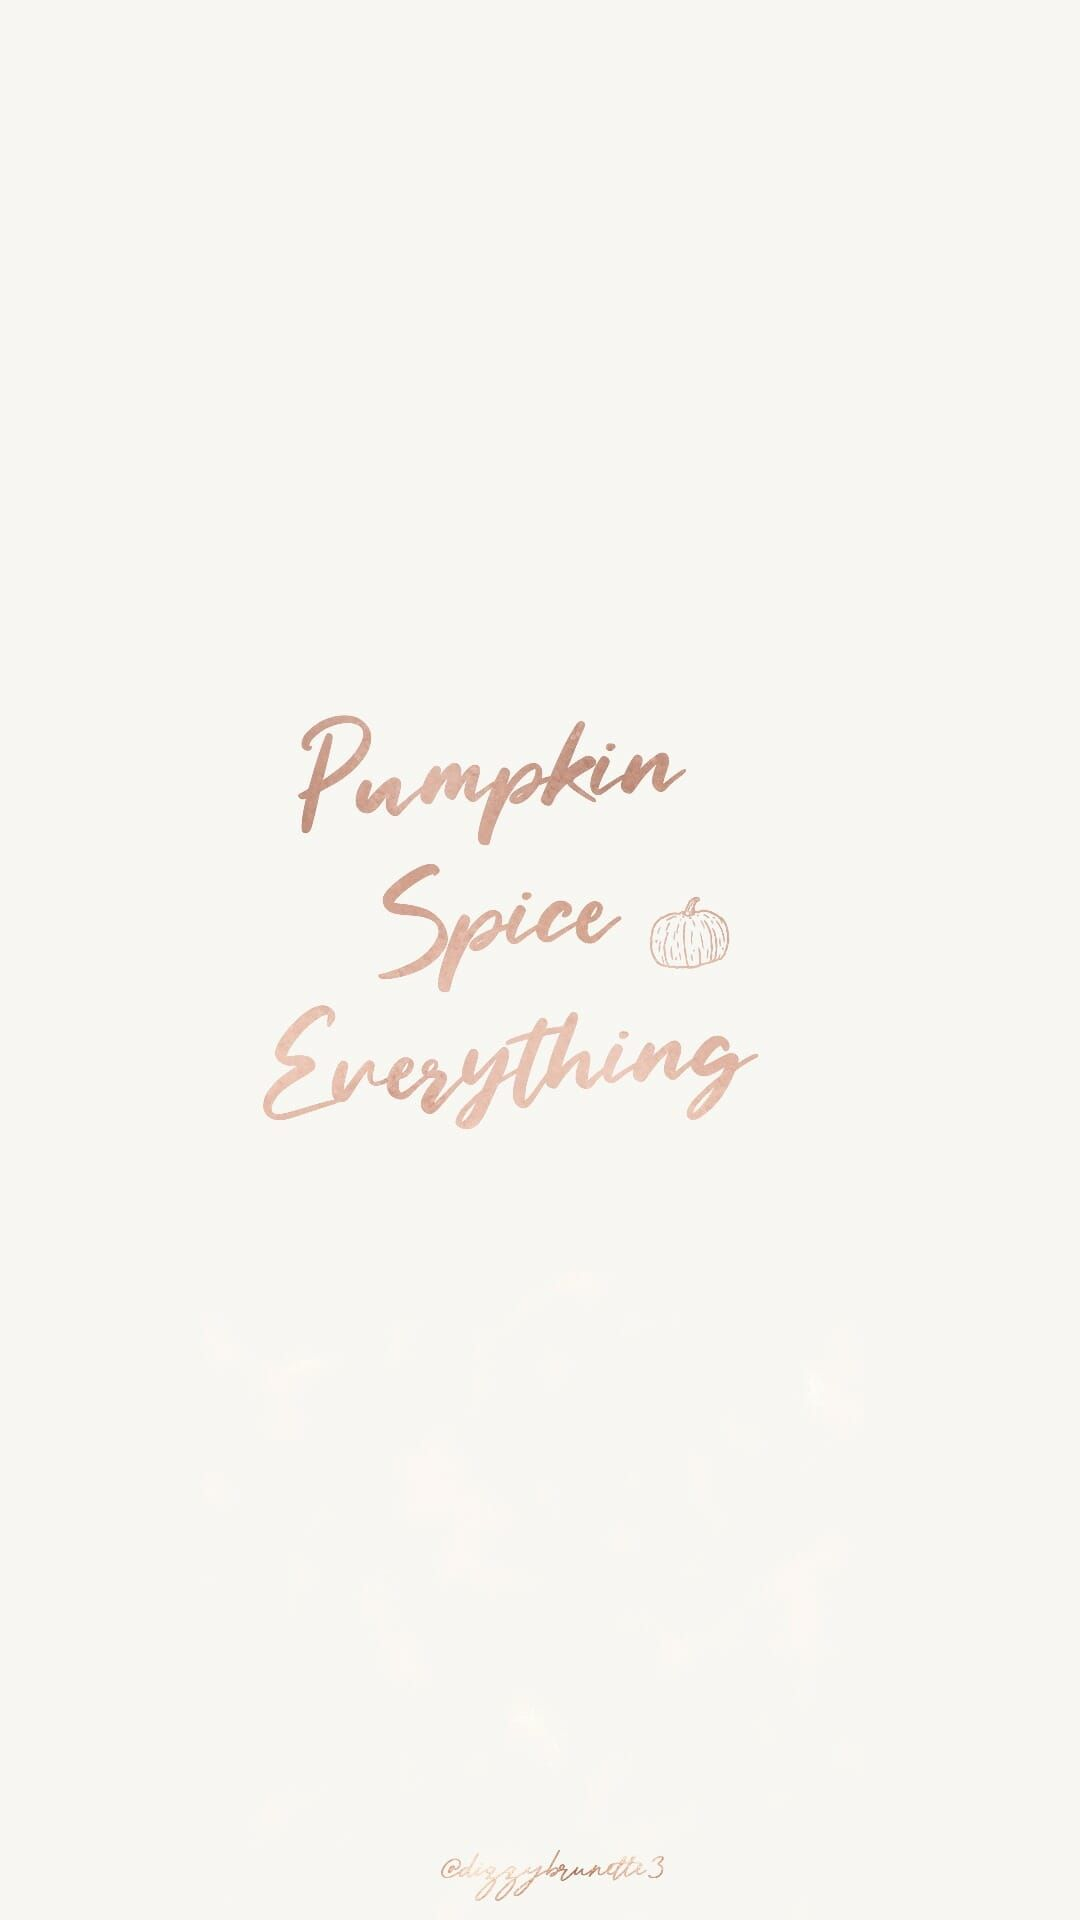 40 Free Amazing Fall Wallpaper Backgrounds For Iphone Autumn Phone Wallpaper Cute Fall Wallpaper Desktop Wallpaper Fall